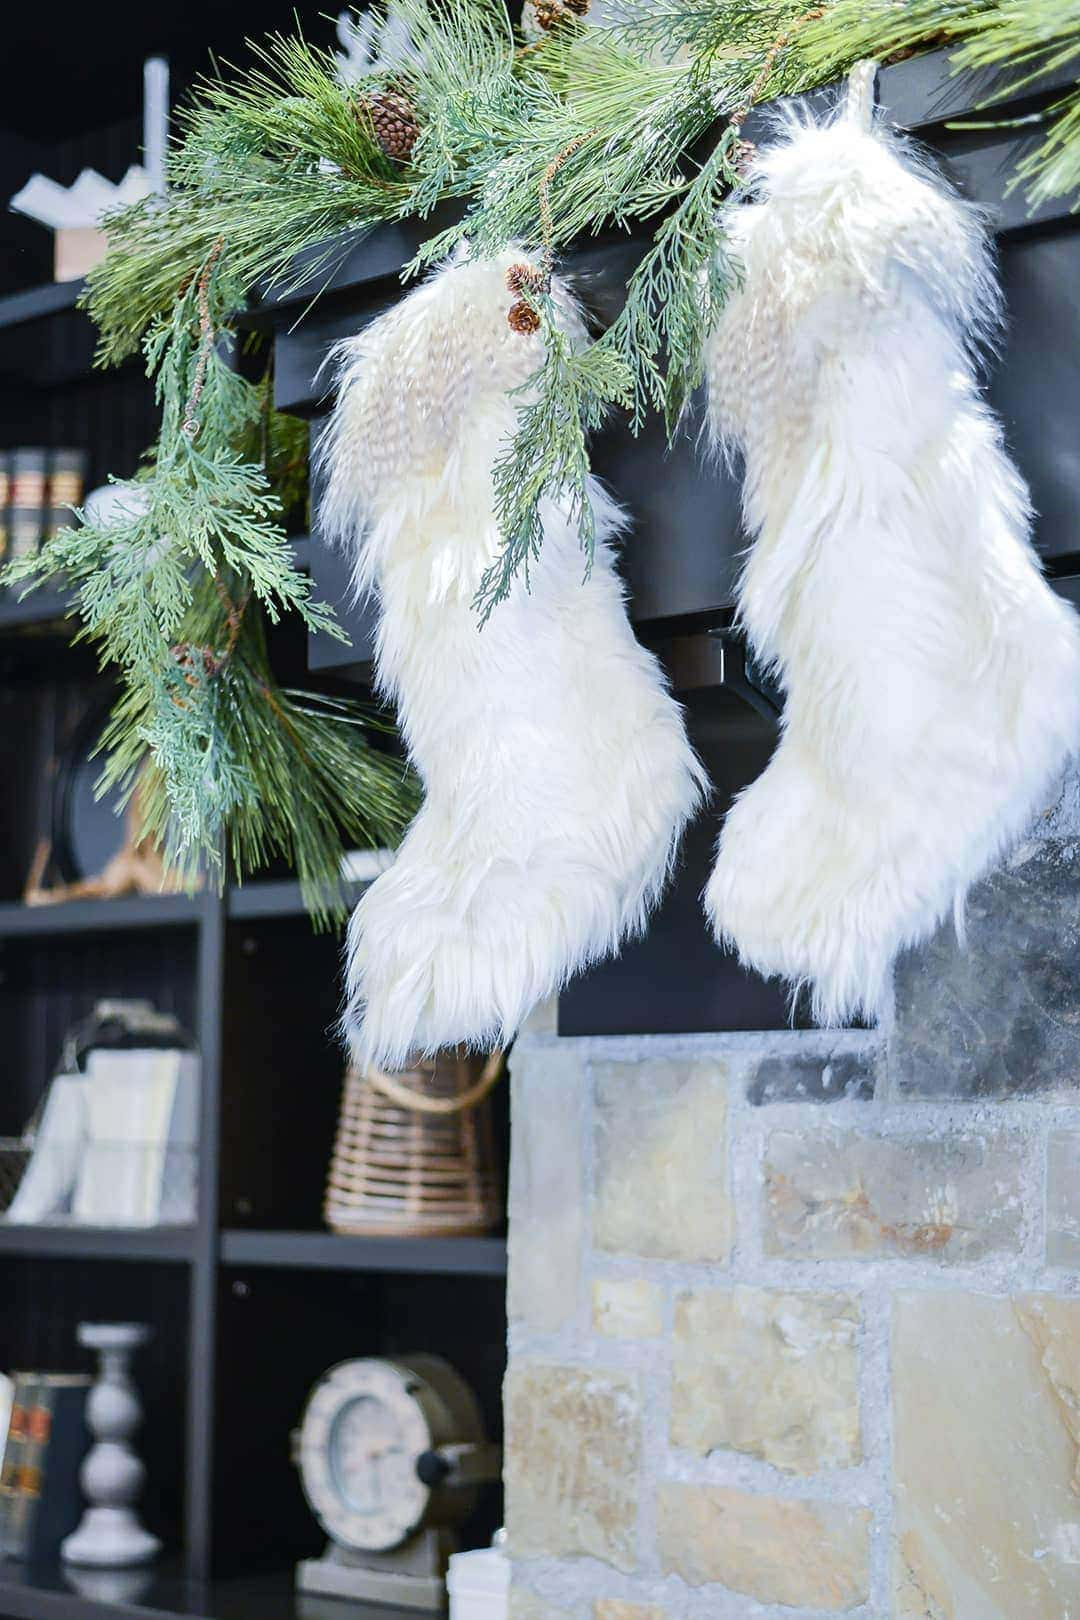 The fireplace is beautifully adorned with fresh greener and fur stockings.